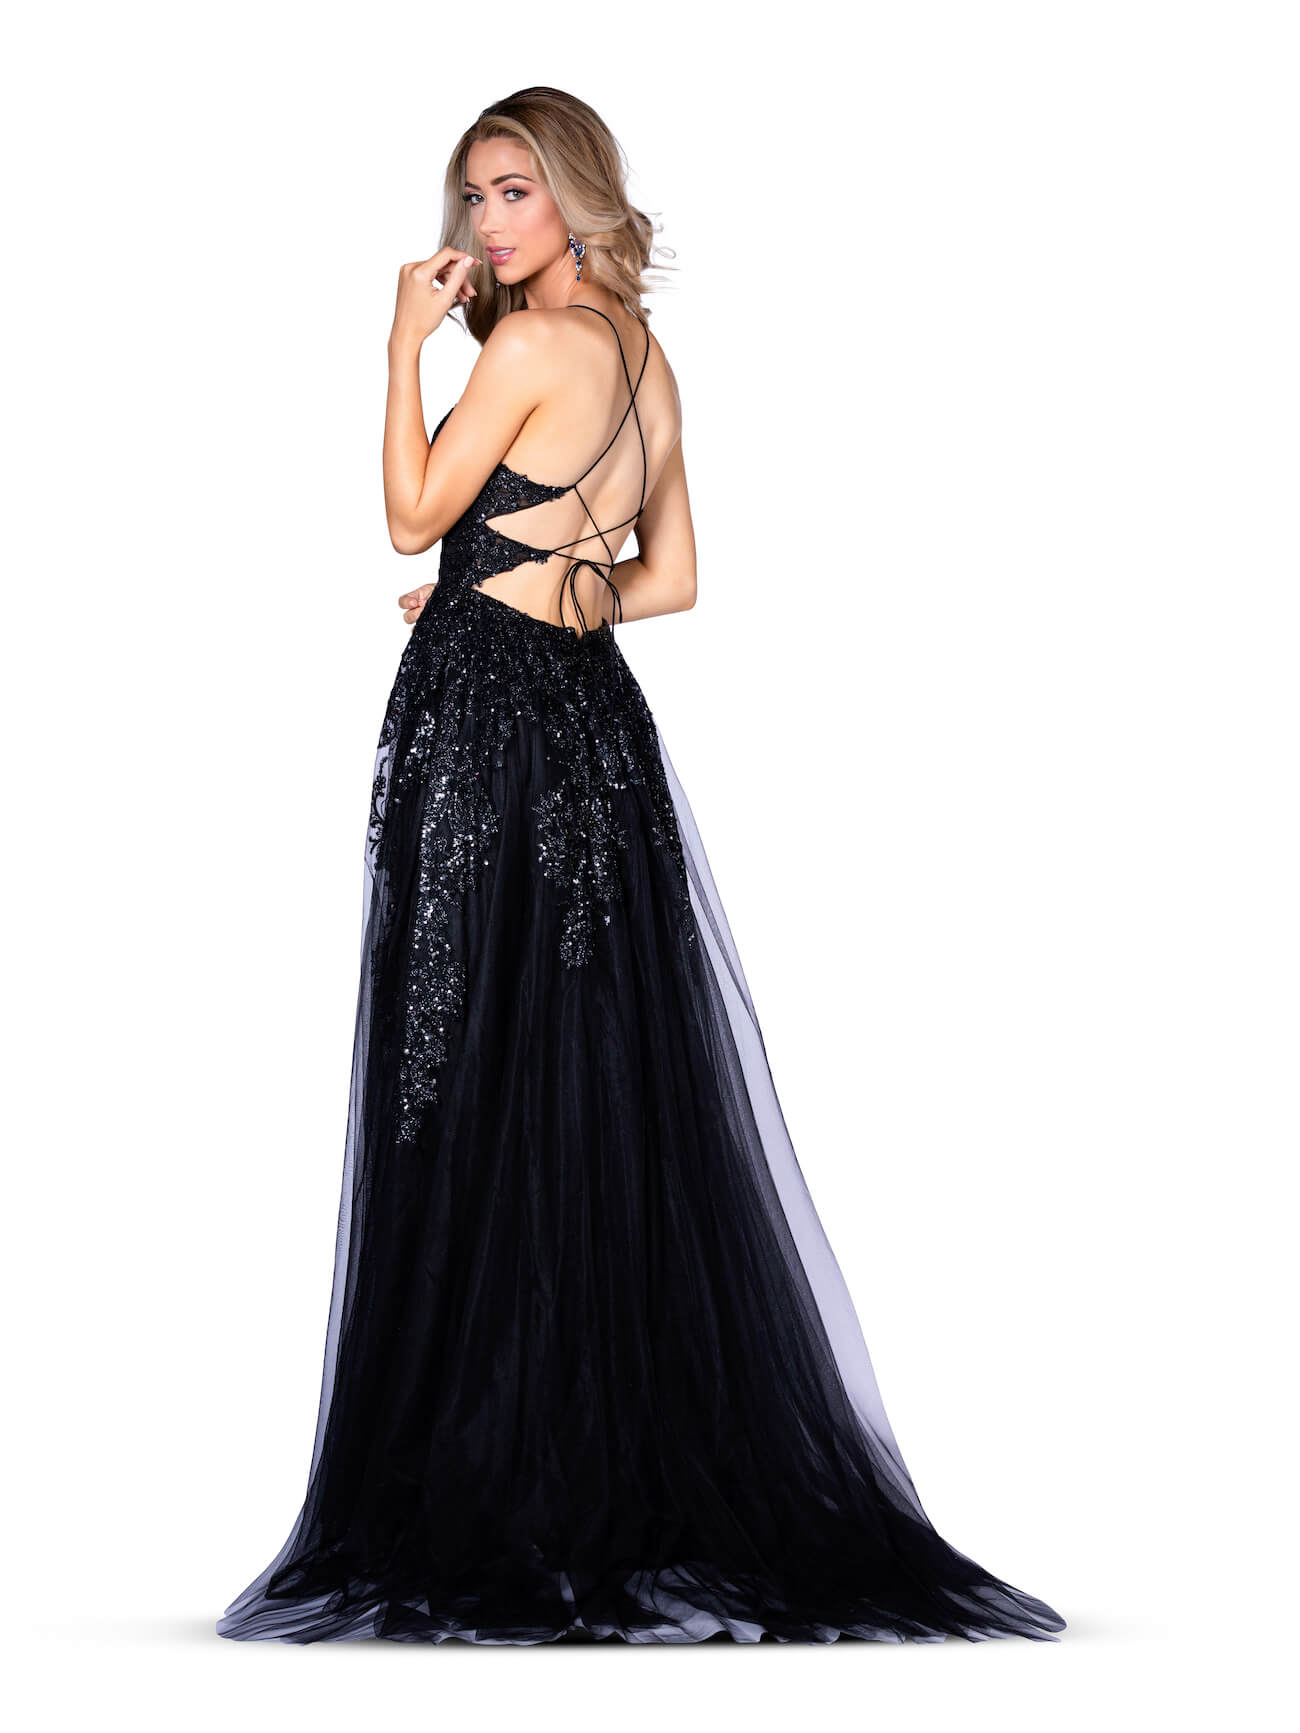 Vienna Black Size 8 Sweetheart Backless A-line Dress on Queenly